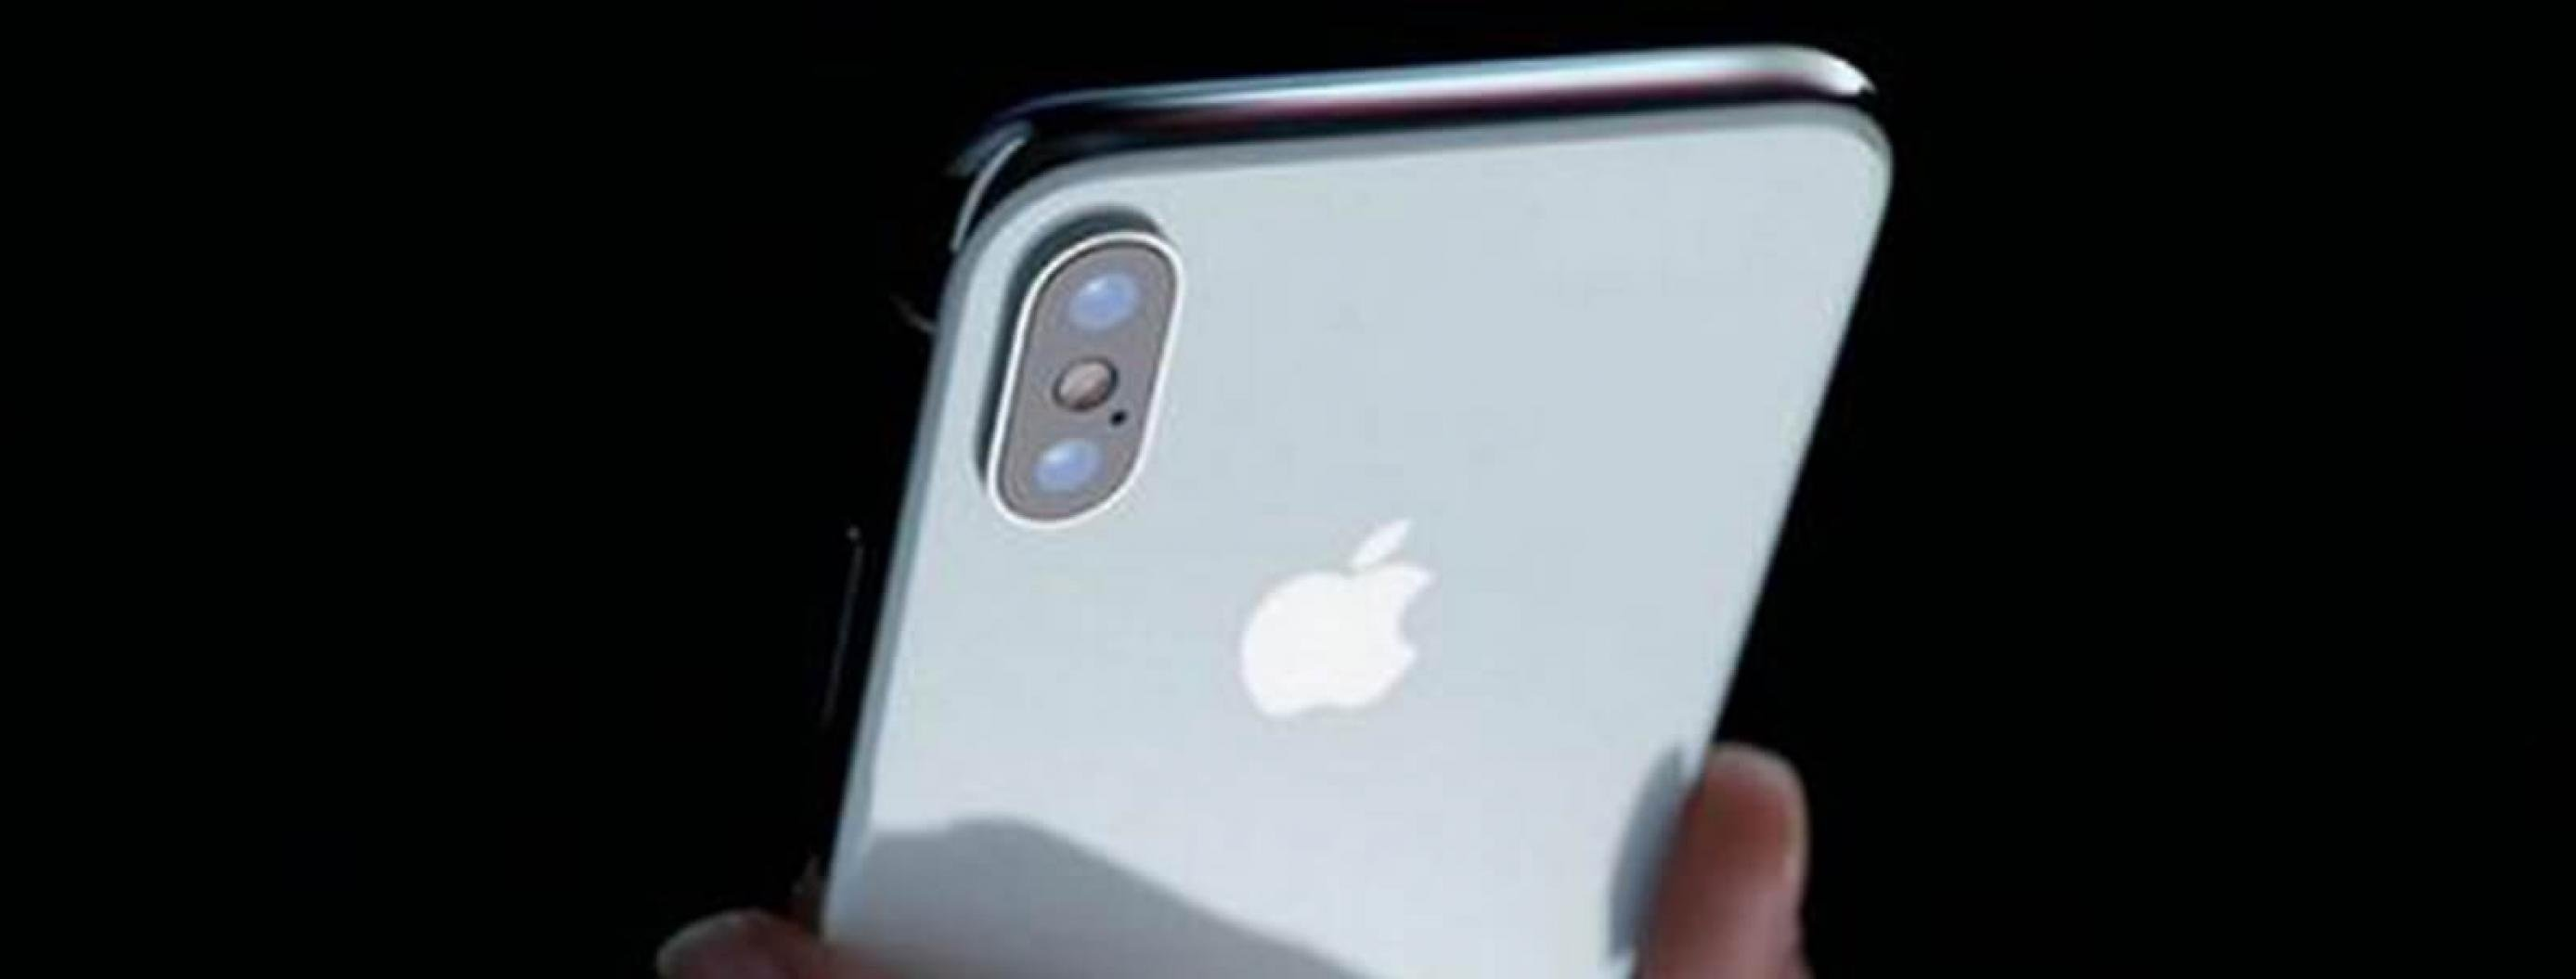 Apple Halves iPhone X Orders Due to Slow Sales